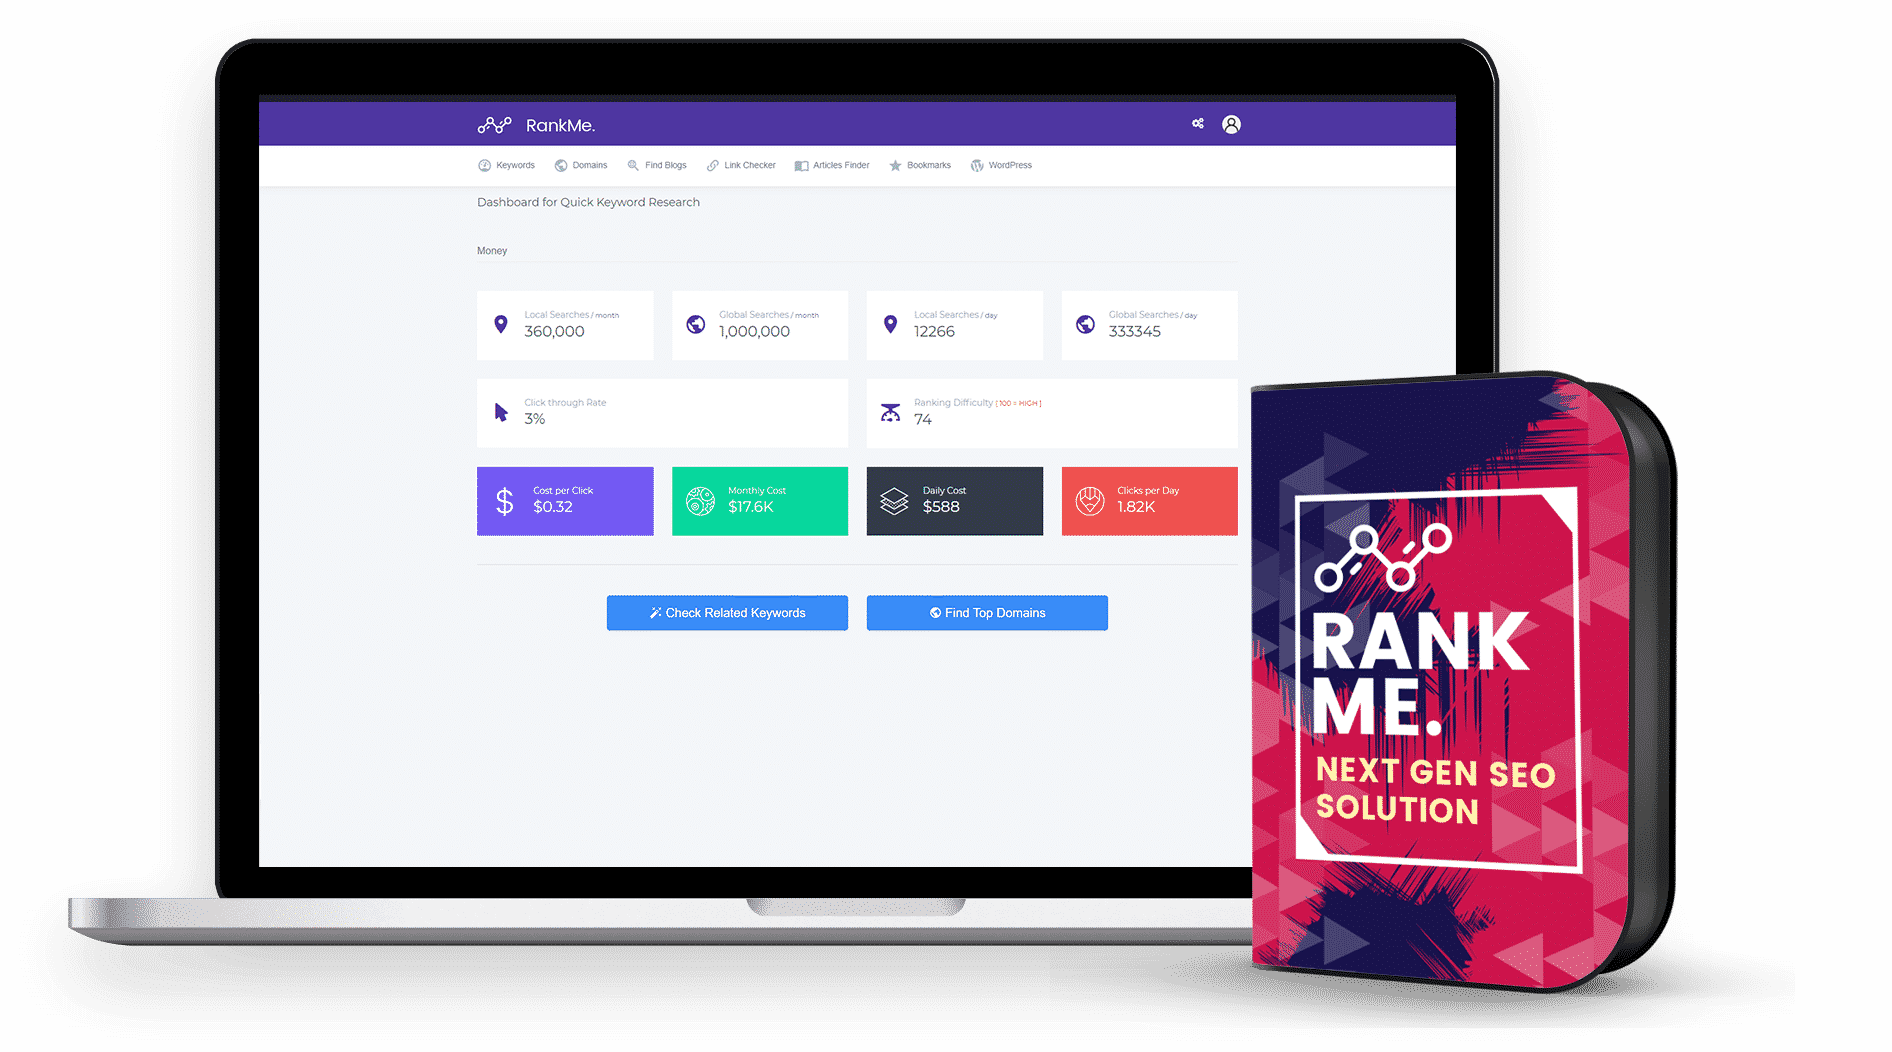 RankMe Review – Big Ranking Promises, Small Fulfillment with Spam